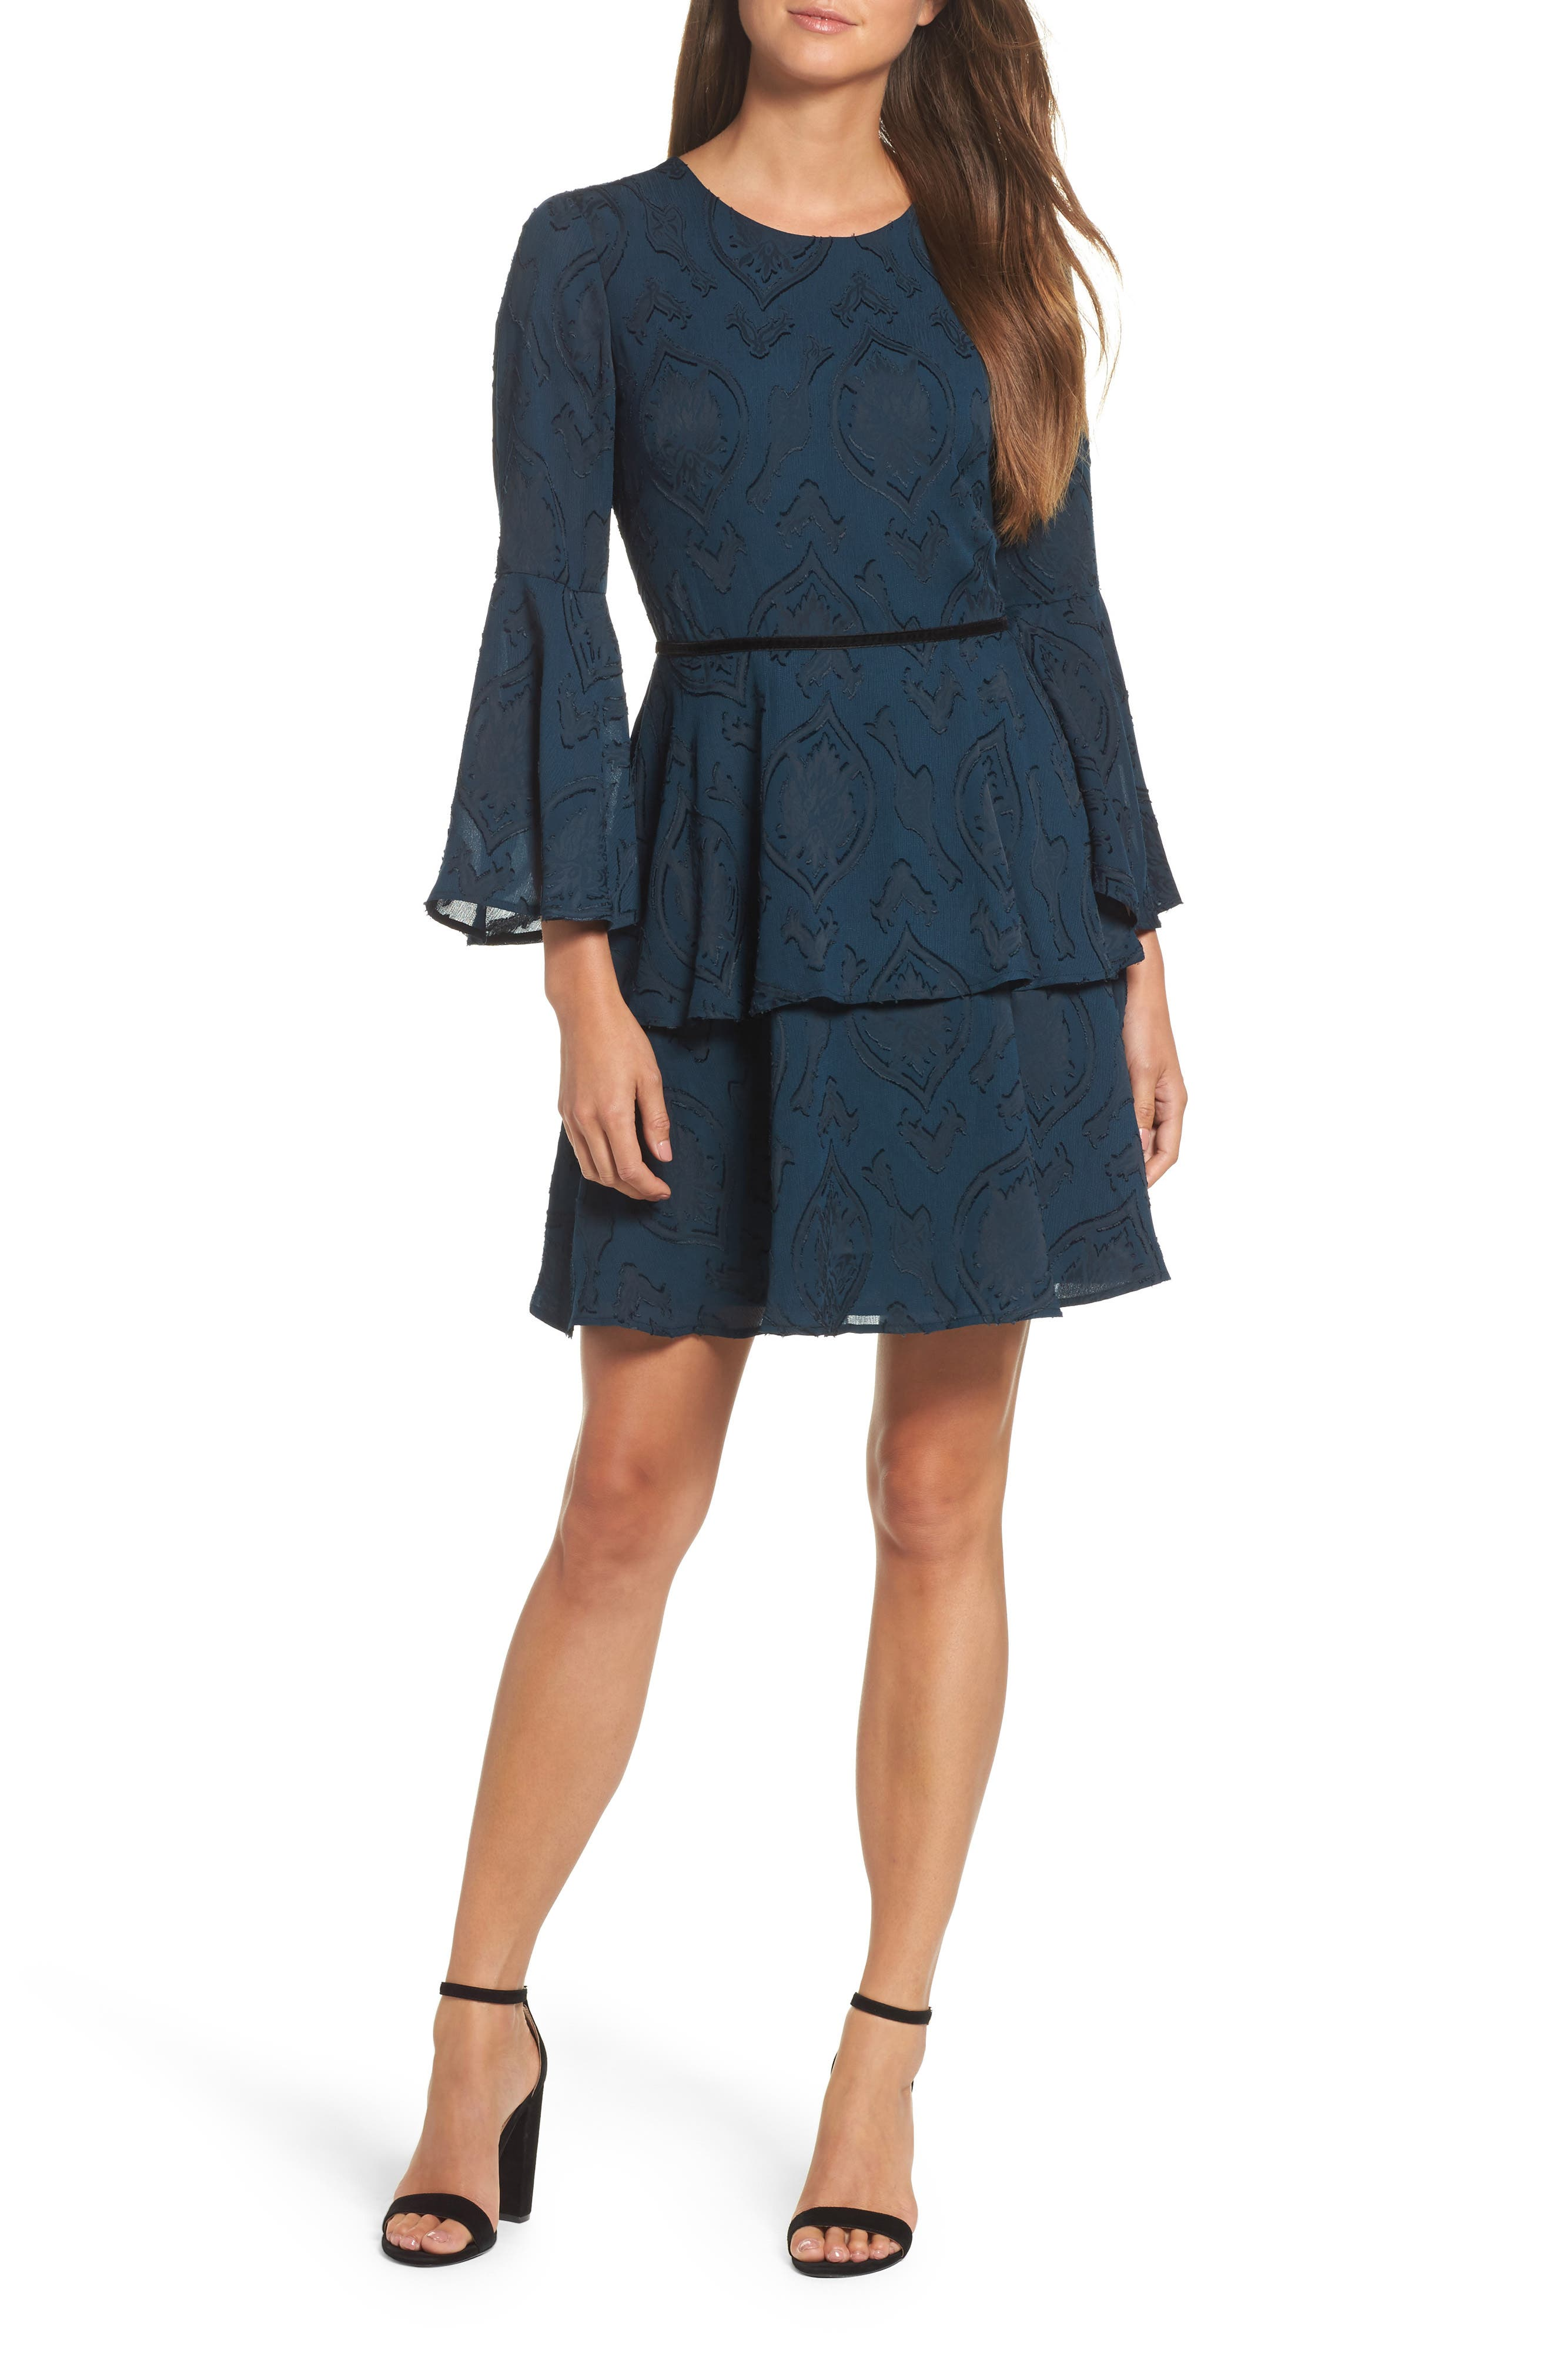 Tiered Chiffon Fit & Flare Dress,                             Main thumbnail 1, color,                             Teal/ Black